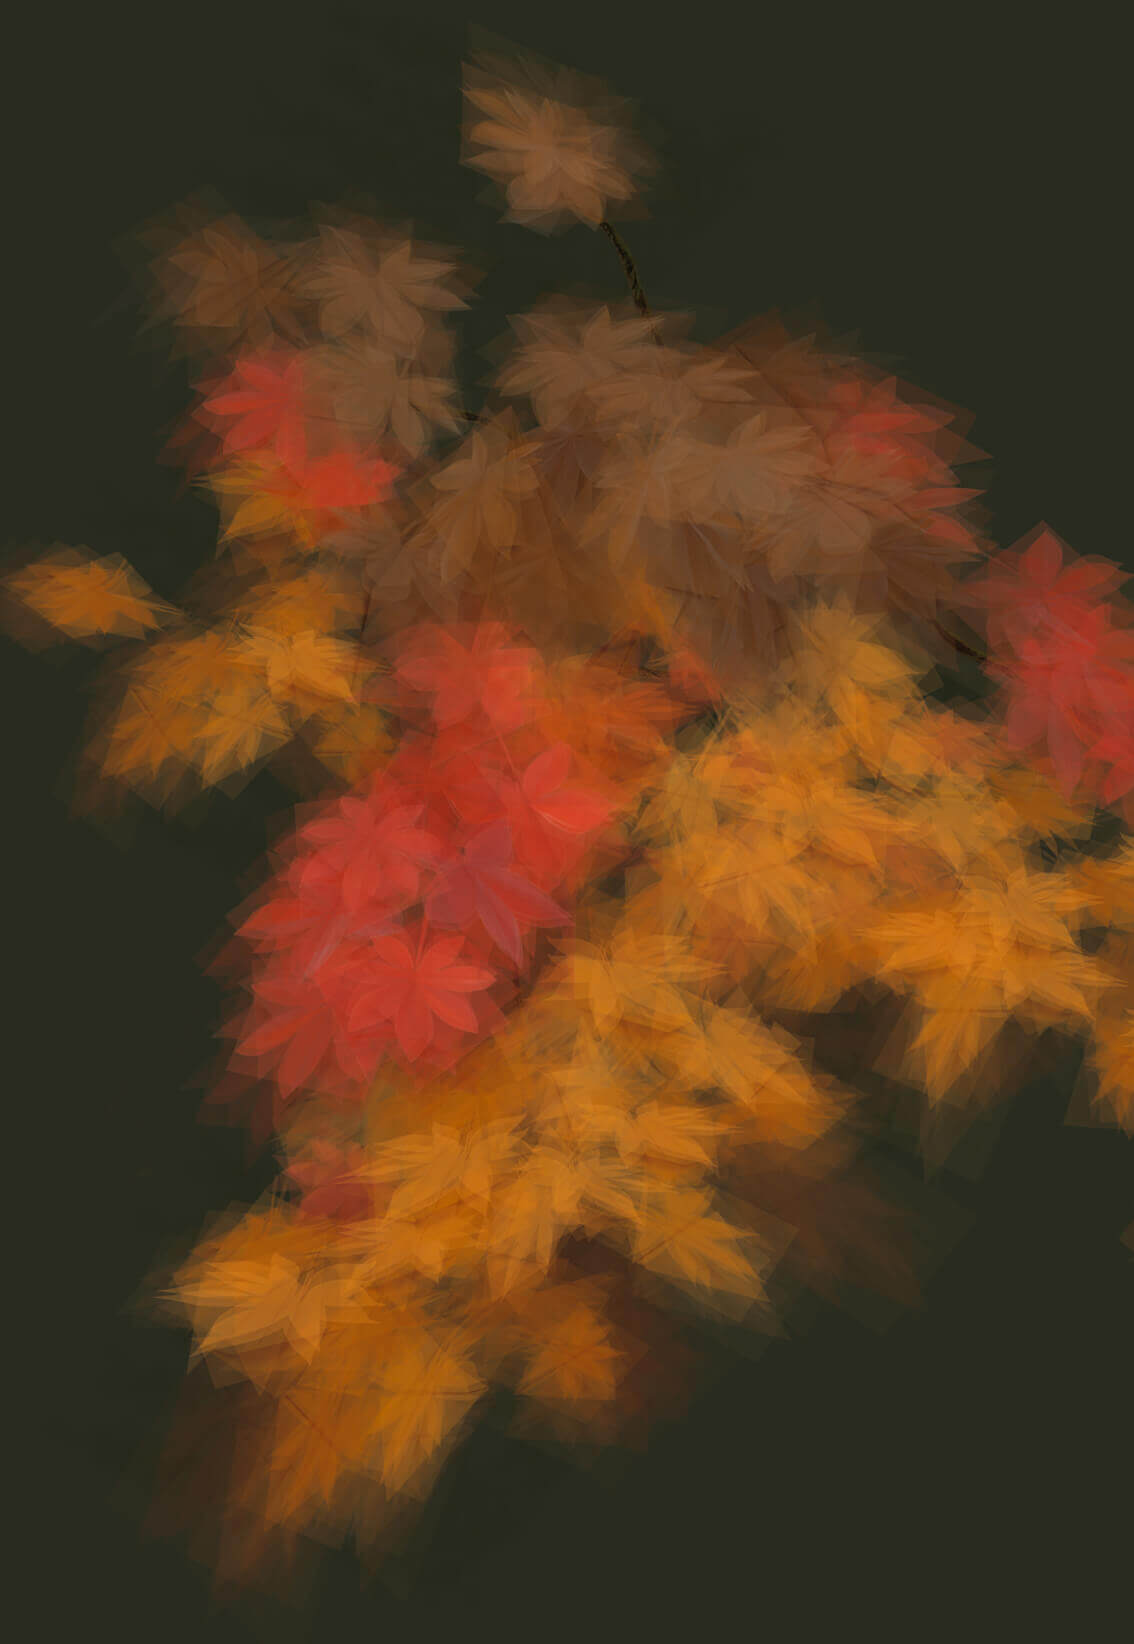 Margarete Schrüfer - Herbst In Simulacrum III 2021 – Giclée print – number 1 out of 3 – 130 x 90 cm